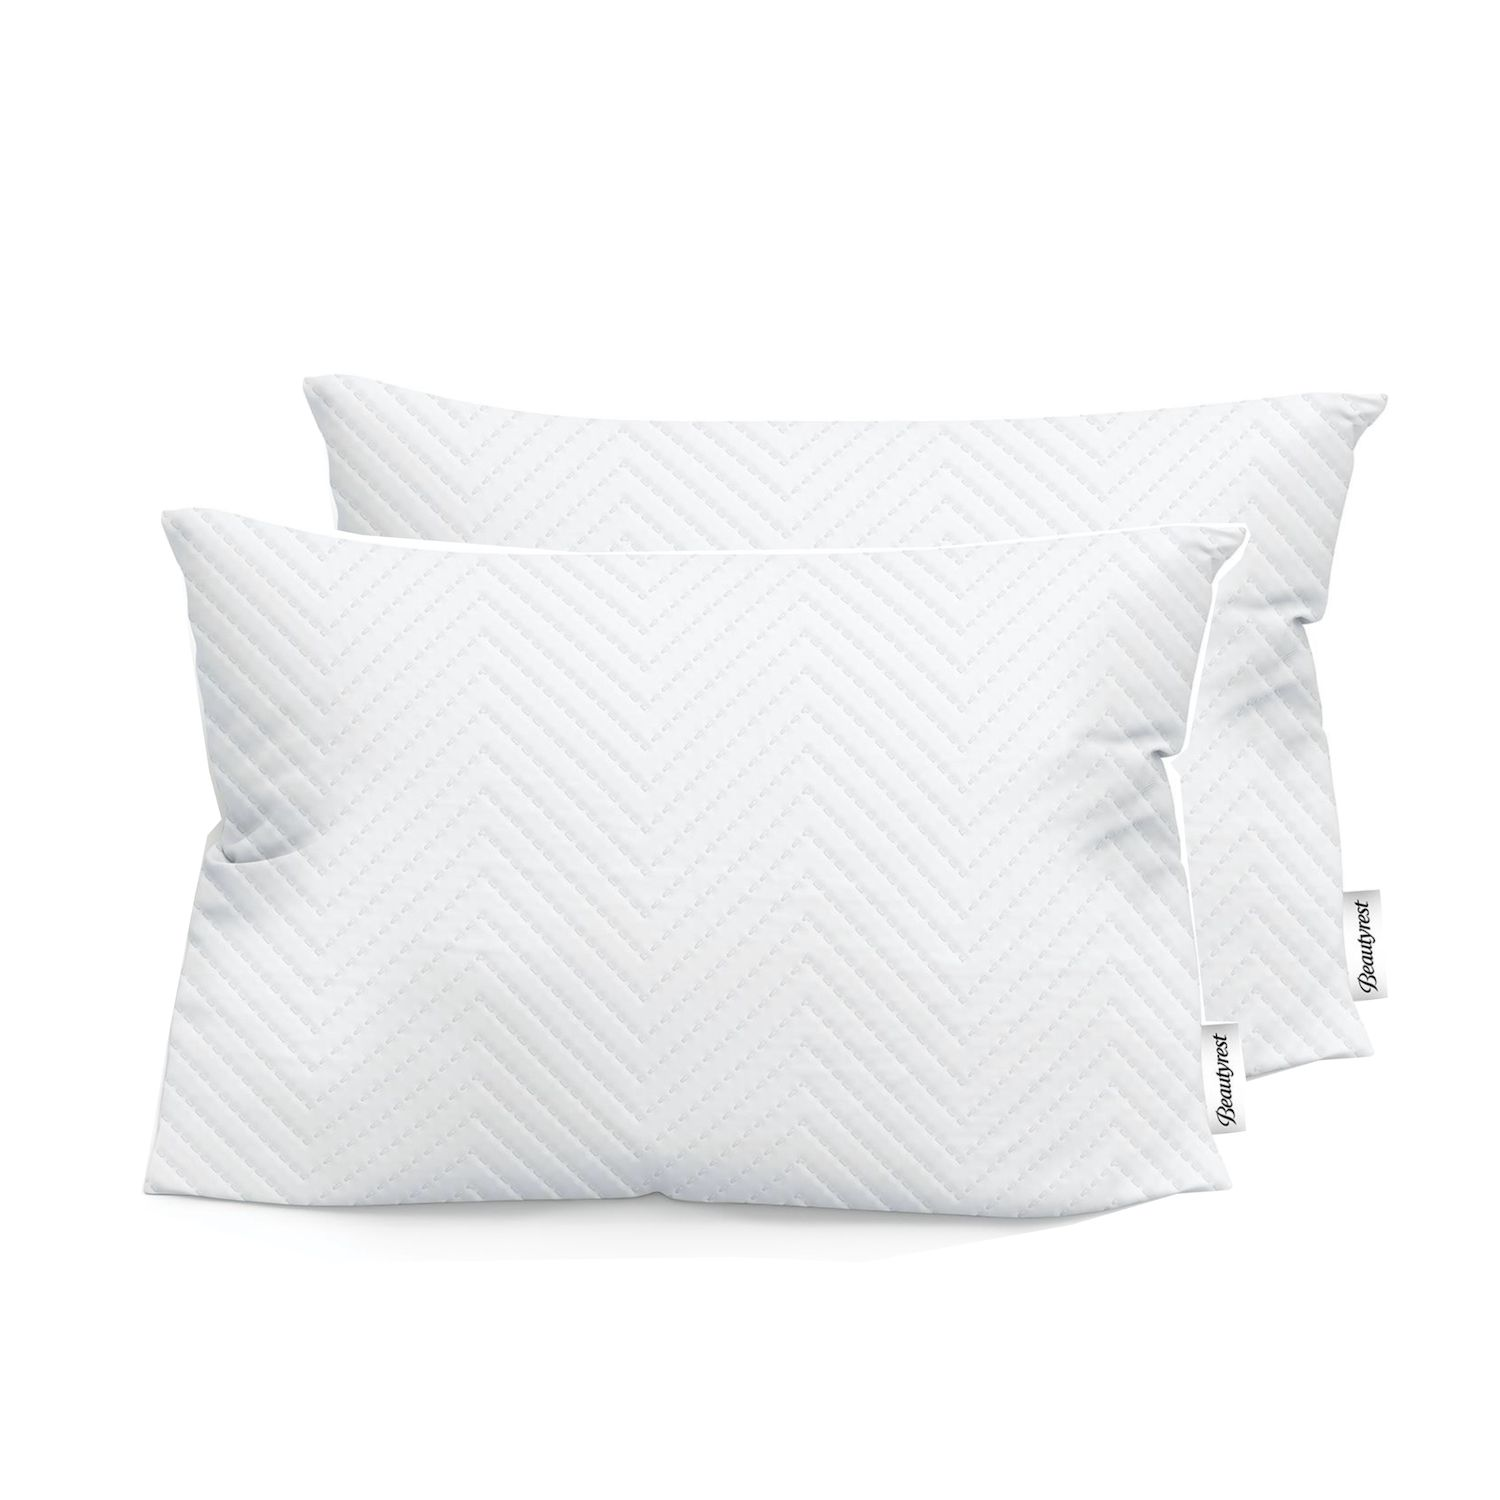 beautyrest quilted comfort antimicrobial protection memory foam cluster pillow